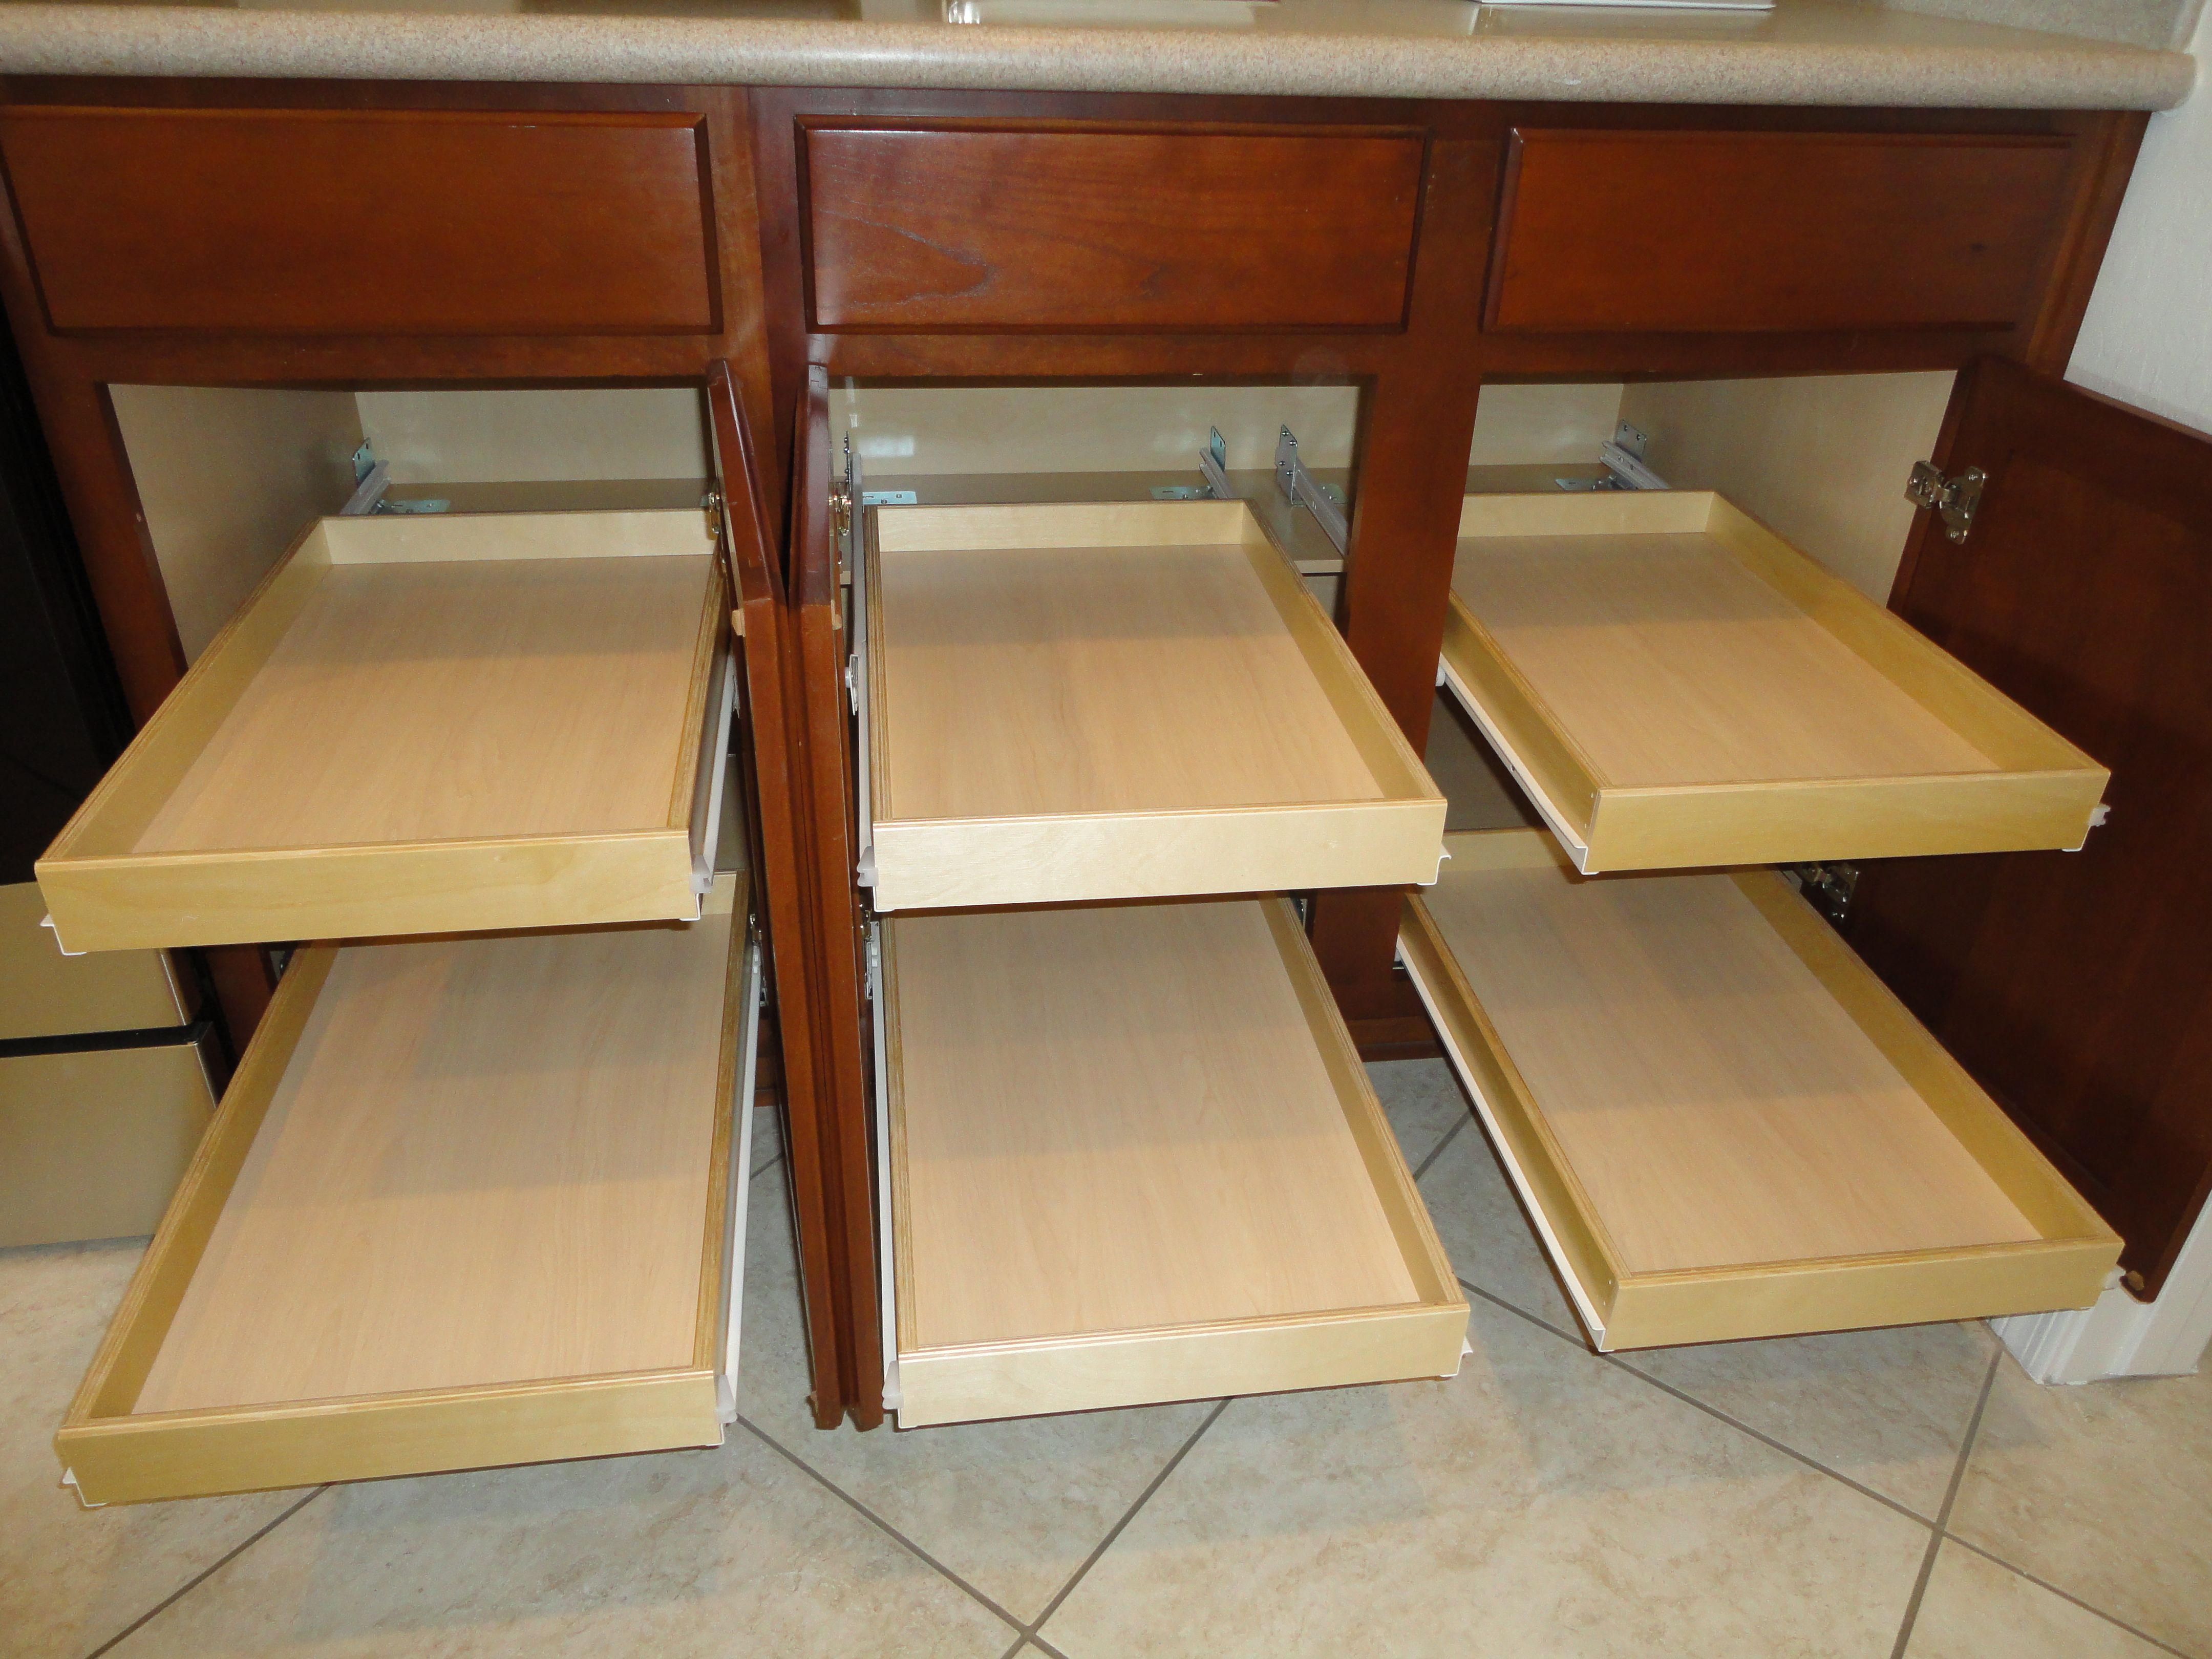 Brackets Allow Full Depth Pull Out Shelves In Lower Cabinets With